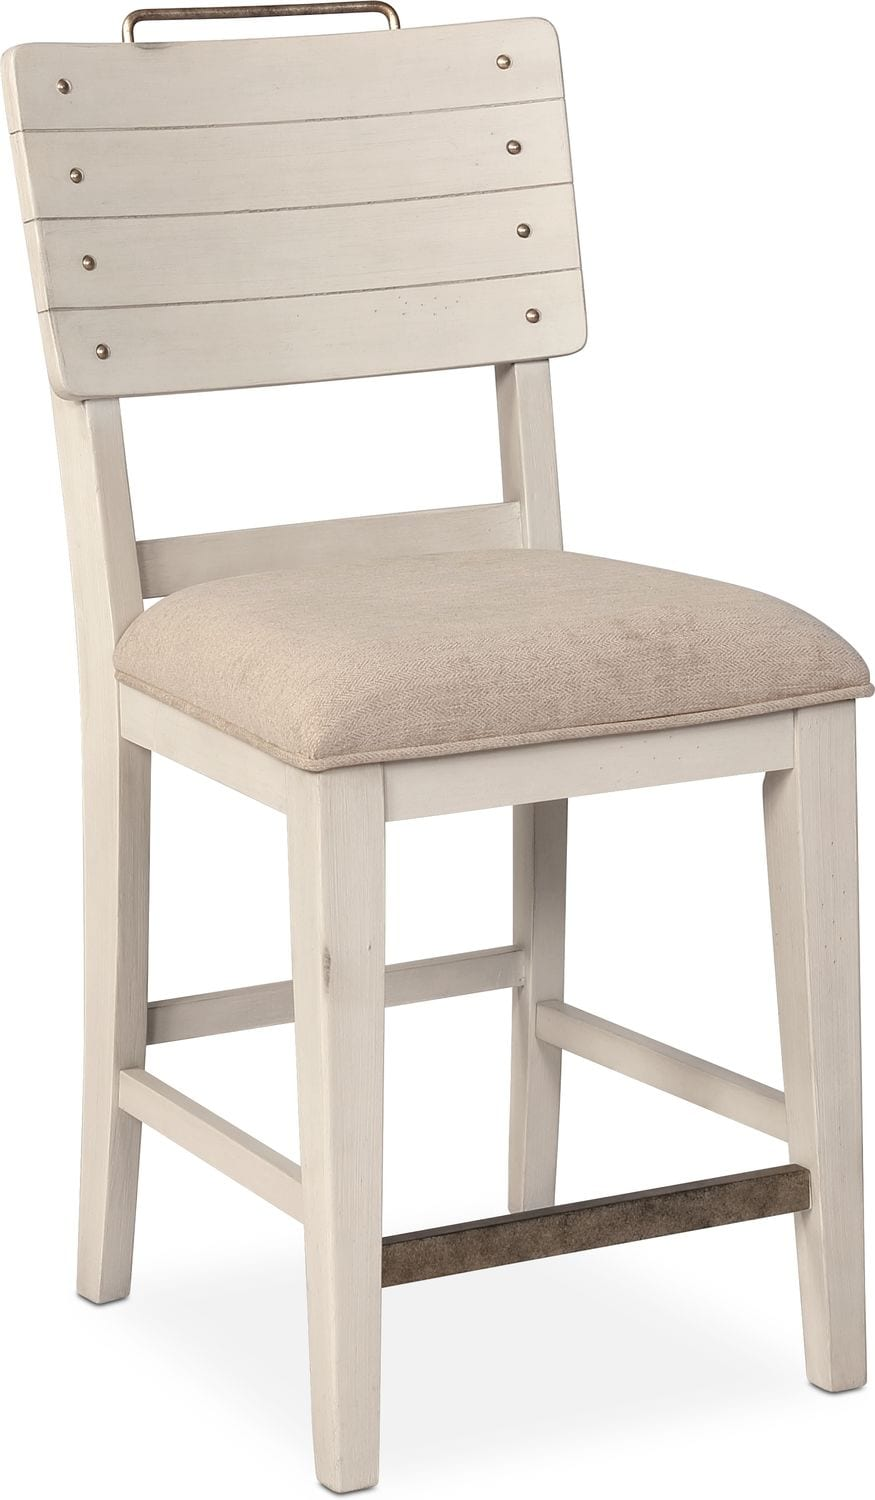 New Haven Counter Height Shiplap Stool White American